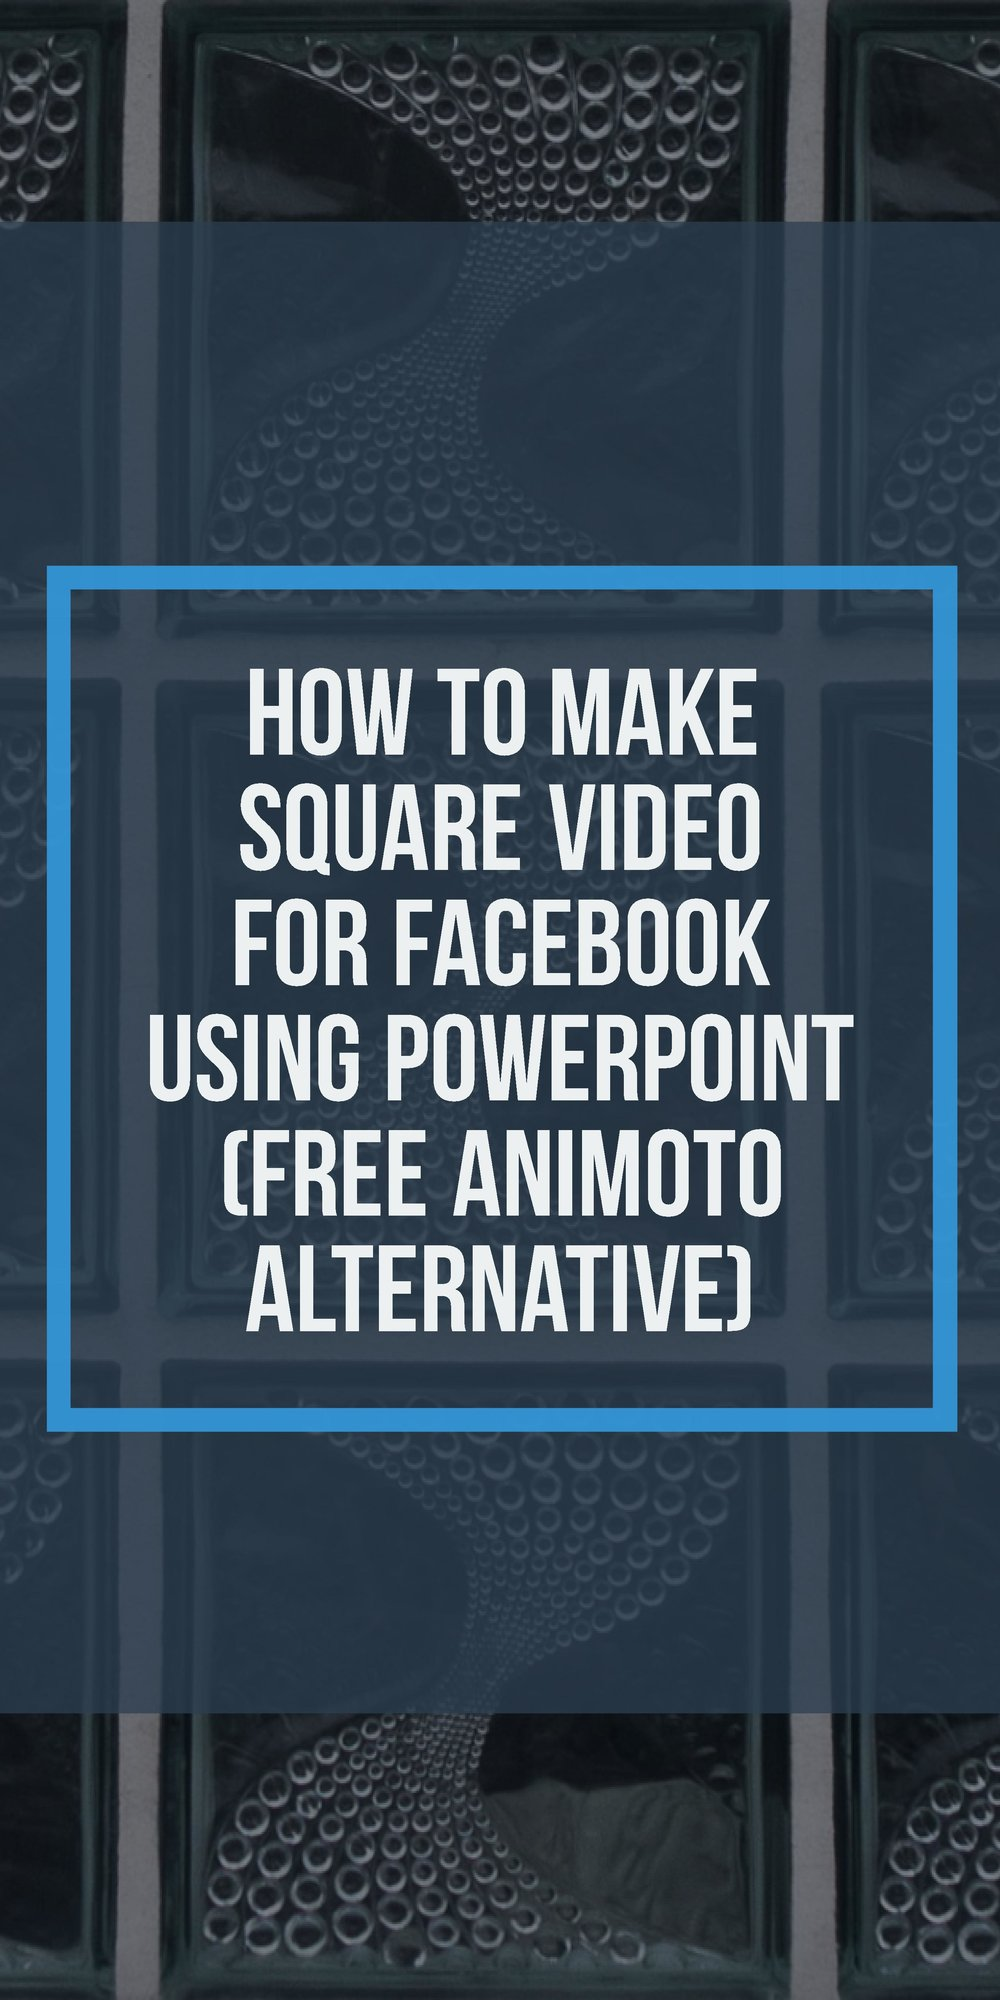 How to Make Square Videos For Facebook Using PowerPoint (Free Animoto Alternative)